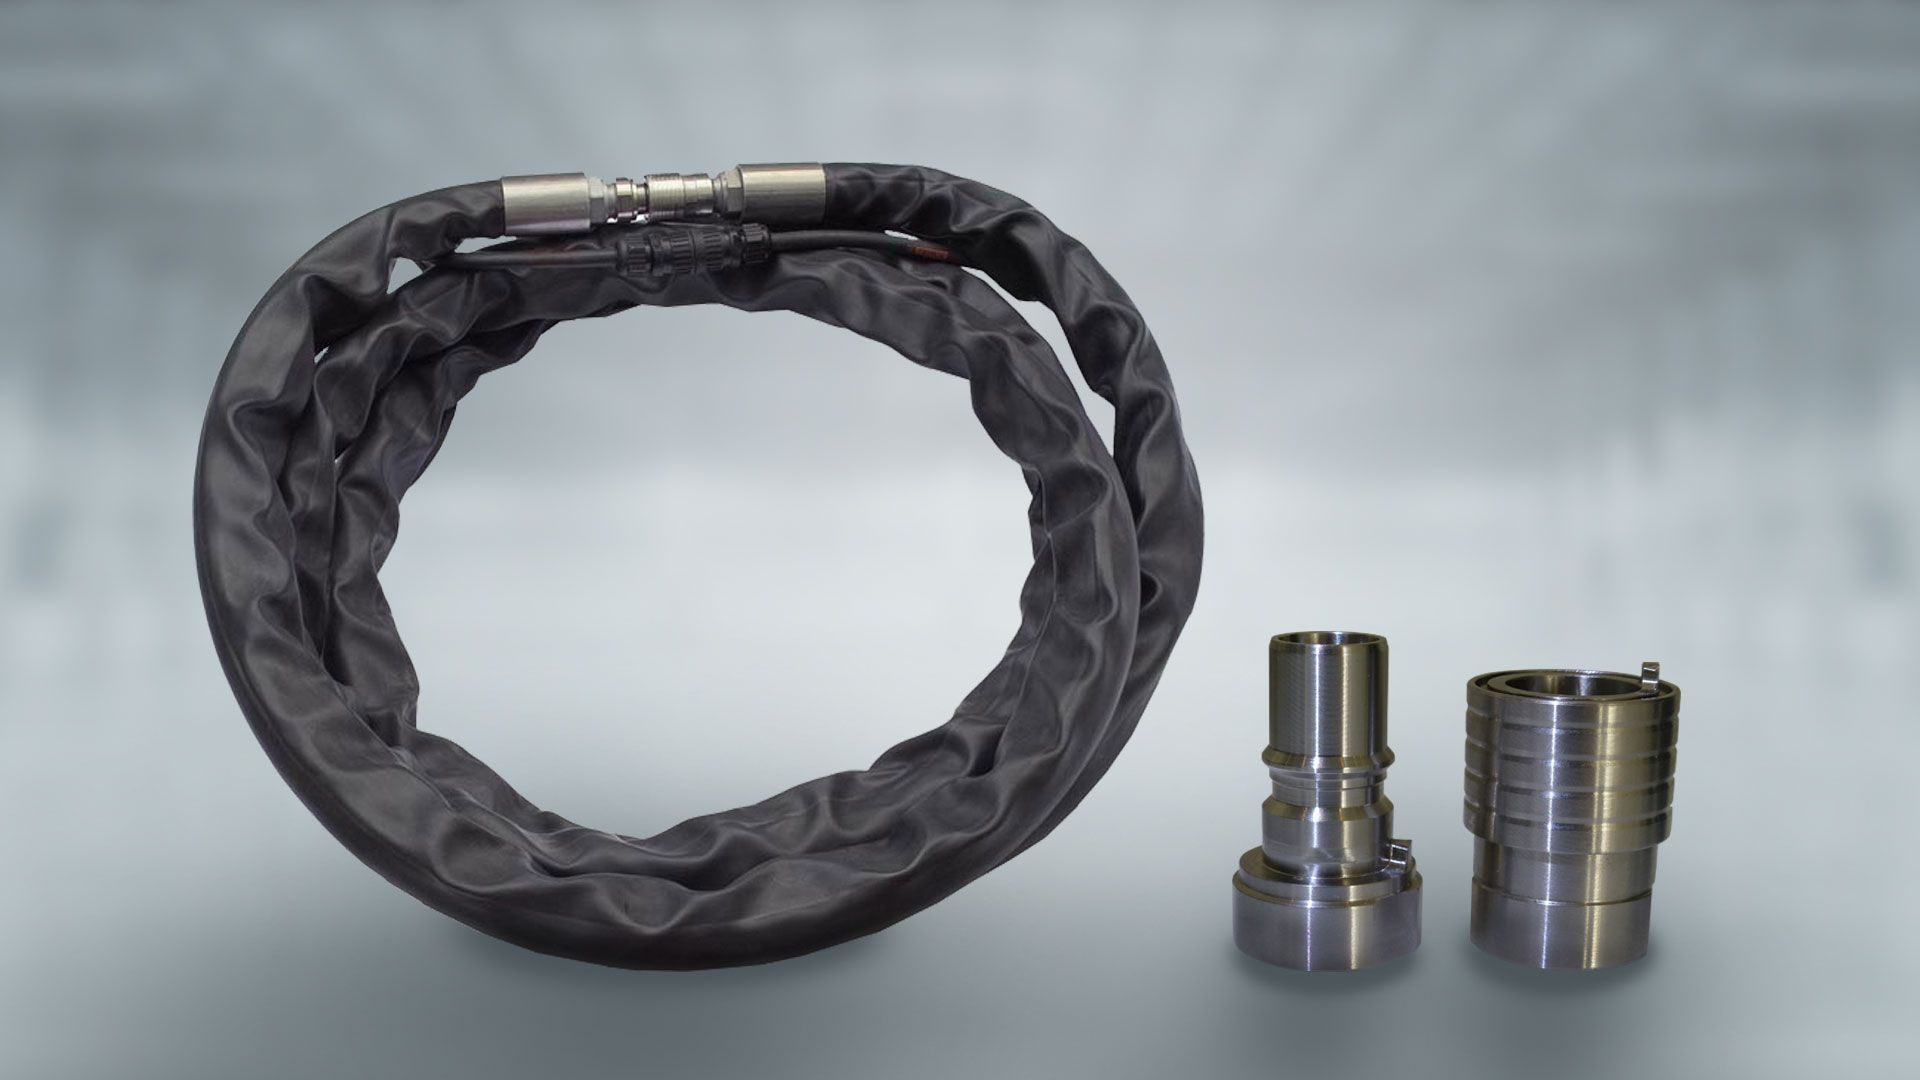 The hose bundle of White Lion (left), the male part (middle) and the female part of the coupling (right)